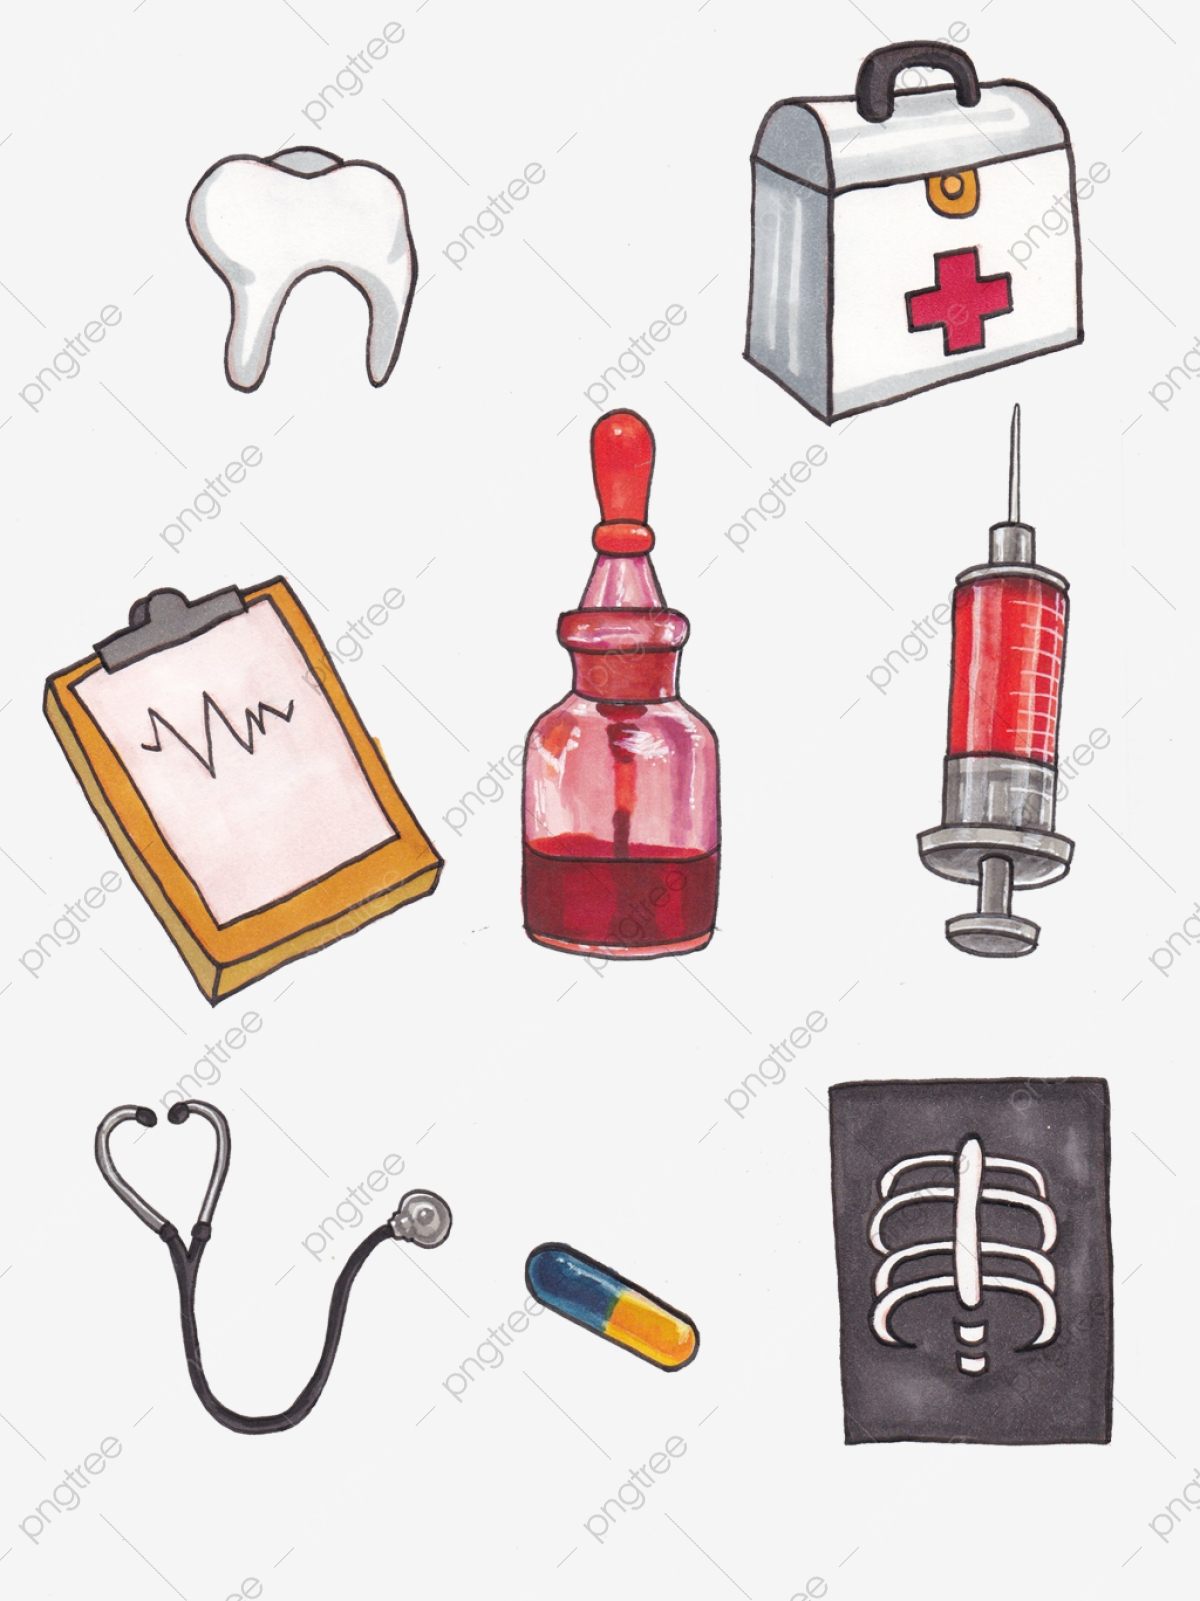 Medical Equipment Images Clip Art, Transparent PNG Clipart Images Free  Download , Page 2 - ClipartMax